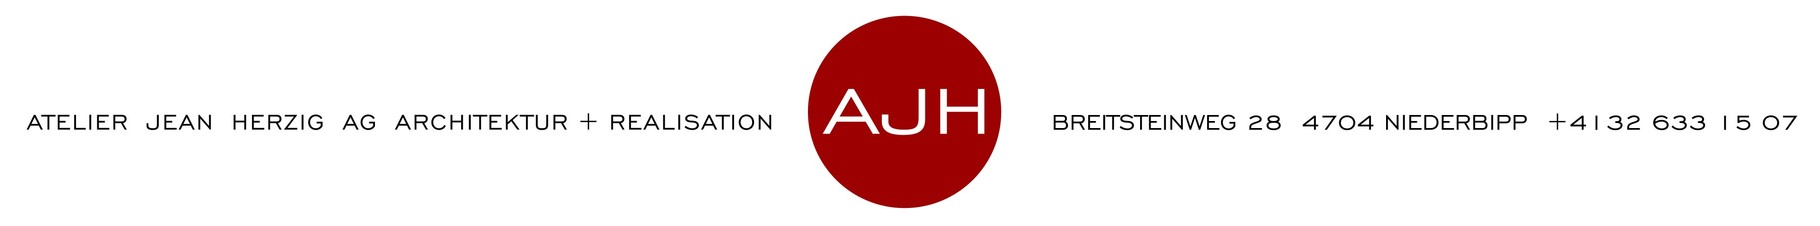 NEUES CORPORATE IDENTITY  BRAND AJH  2016 ___AJH since 2005